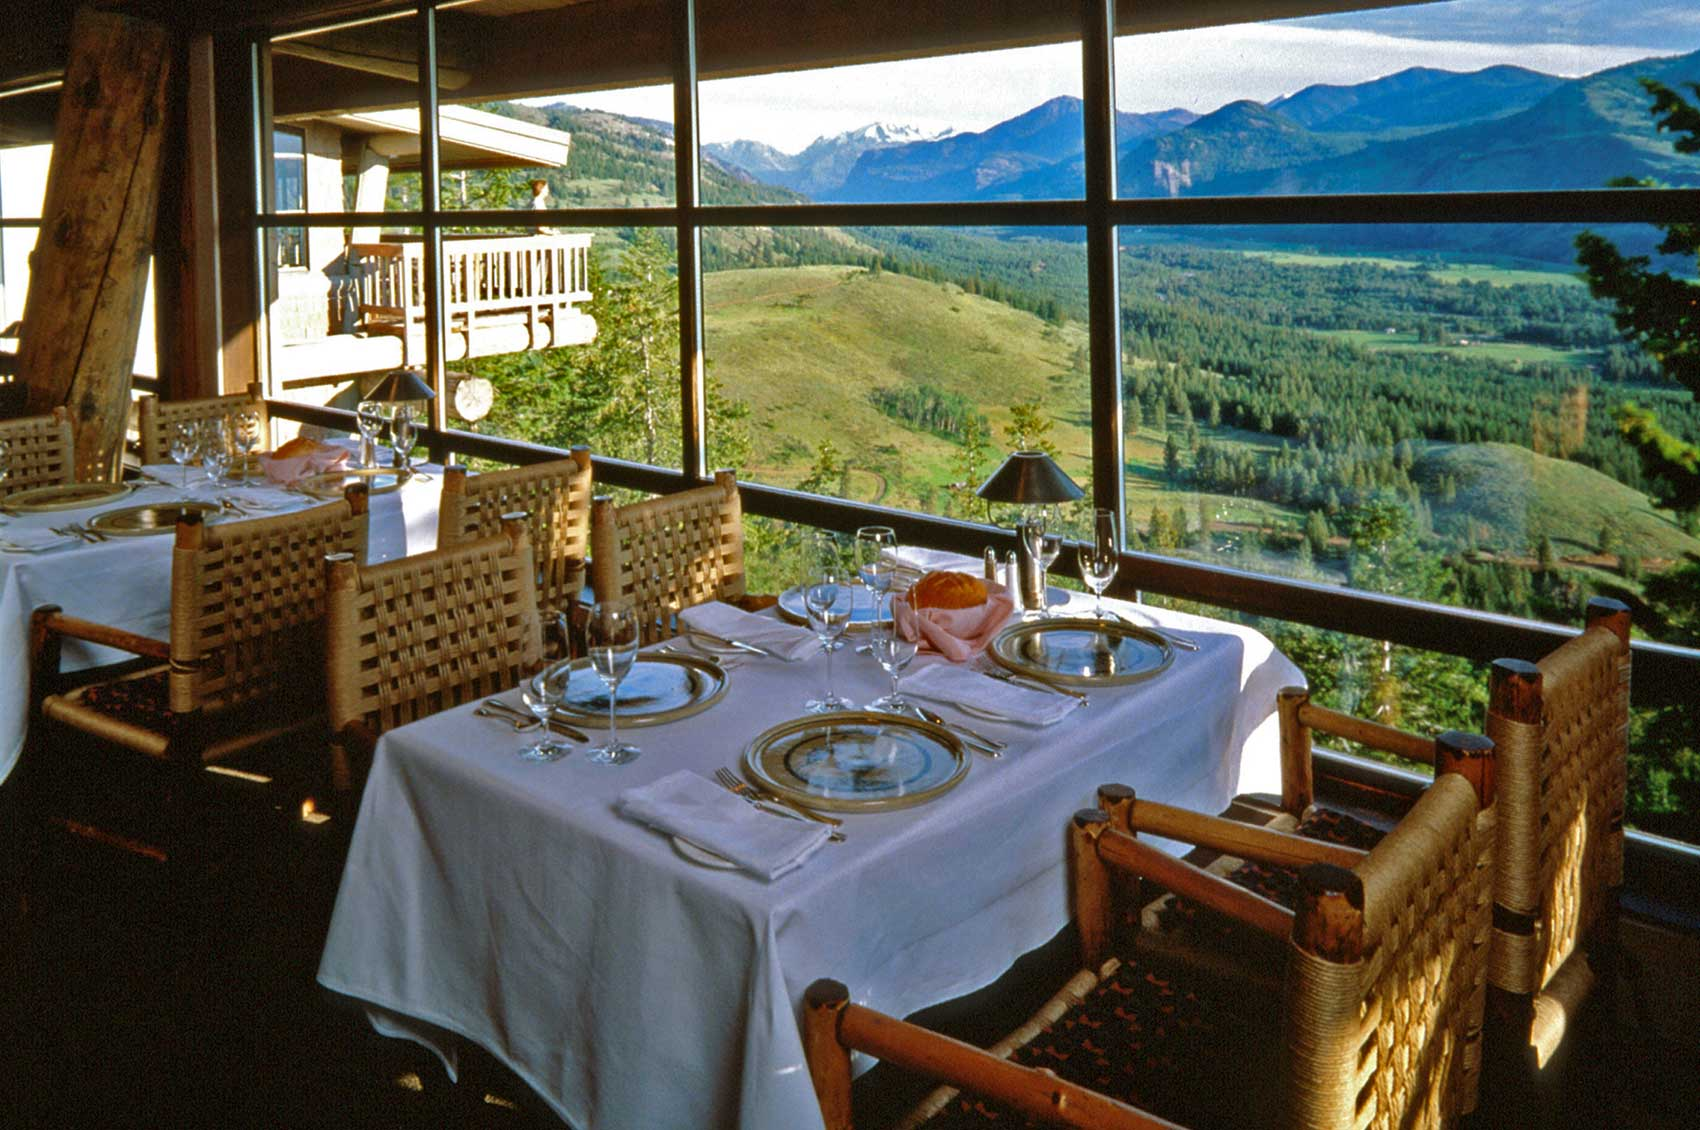 sun mountain lodge - fodor's 100 hotel awards 2013